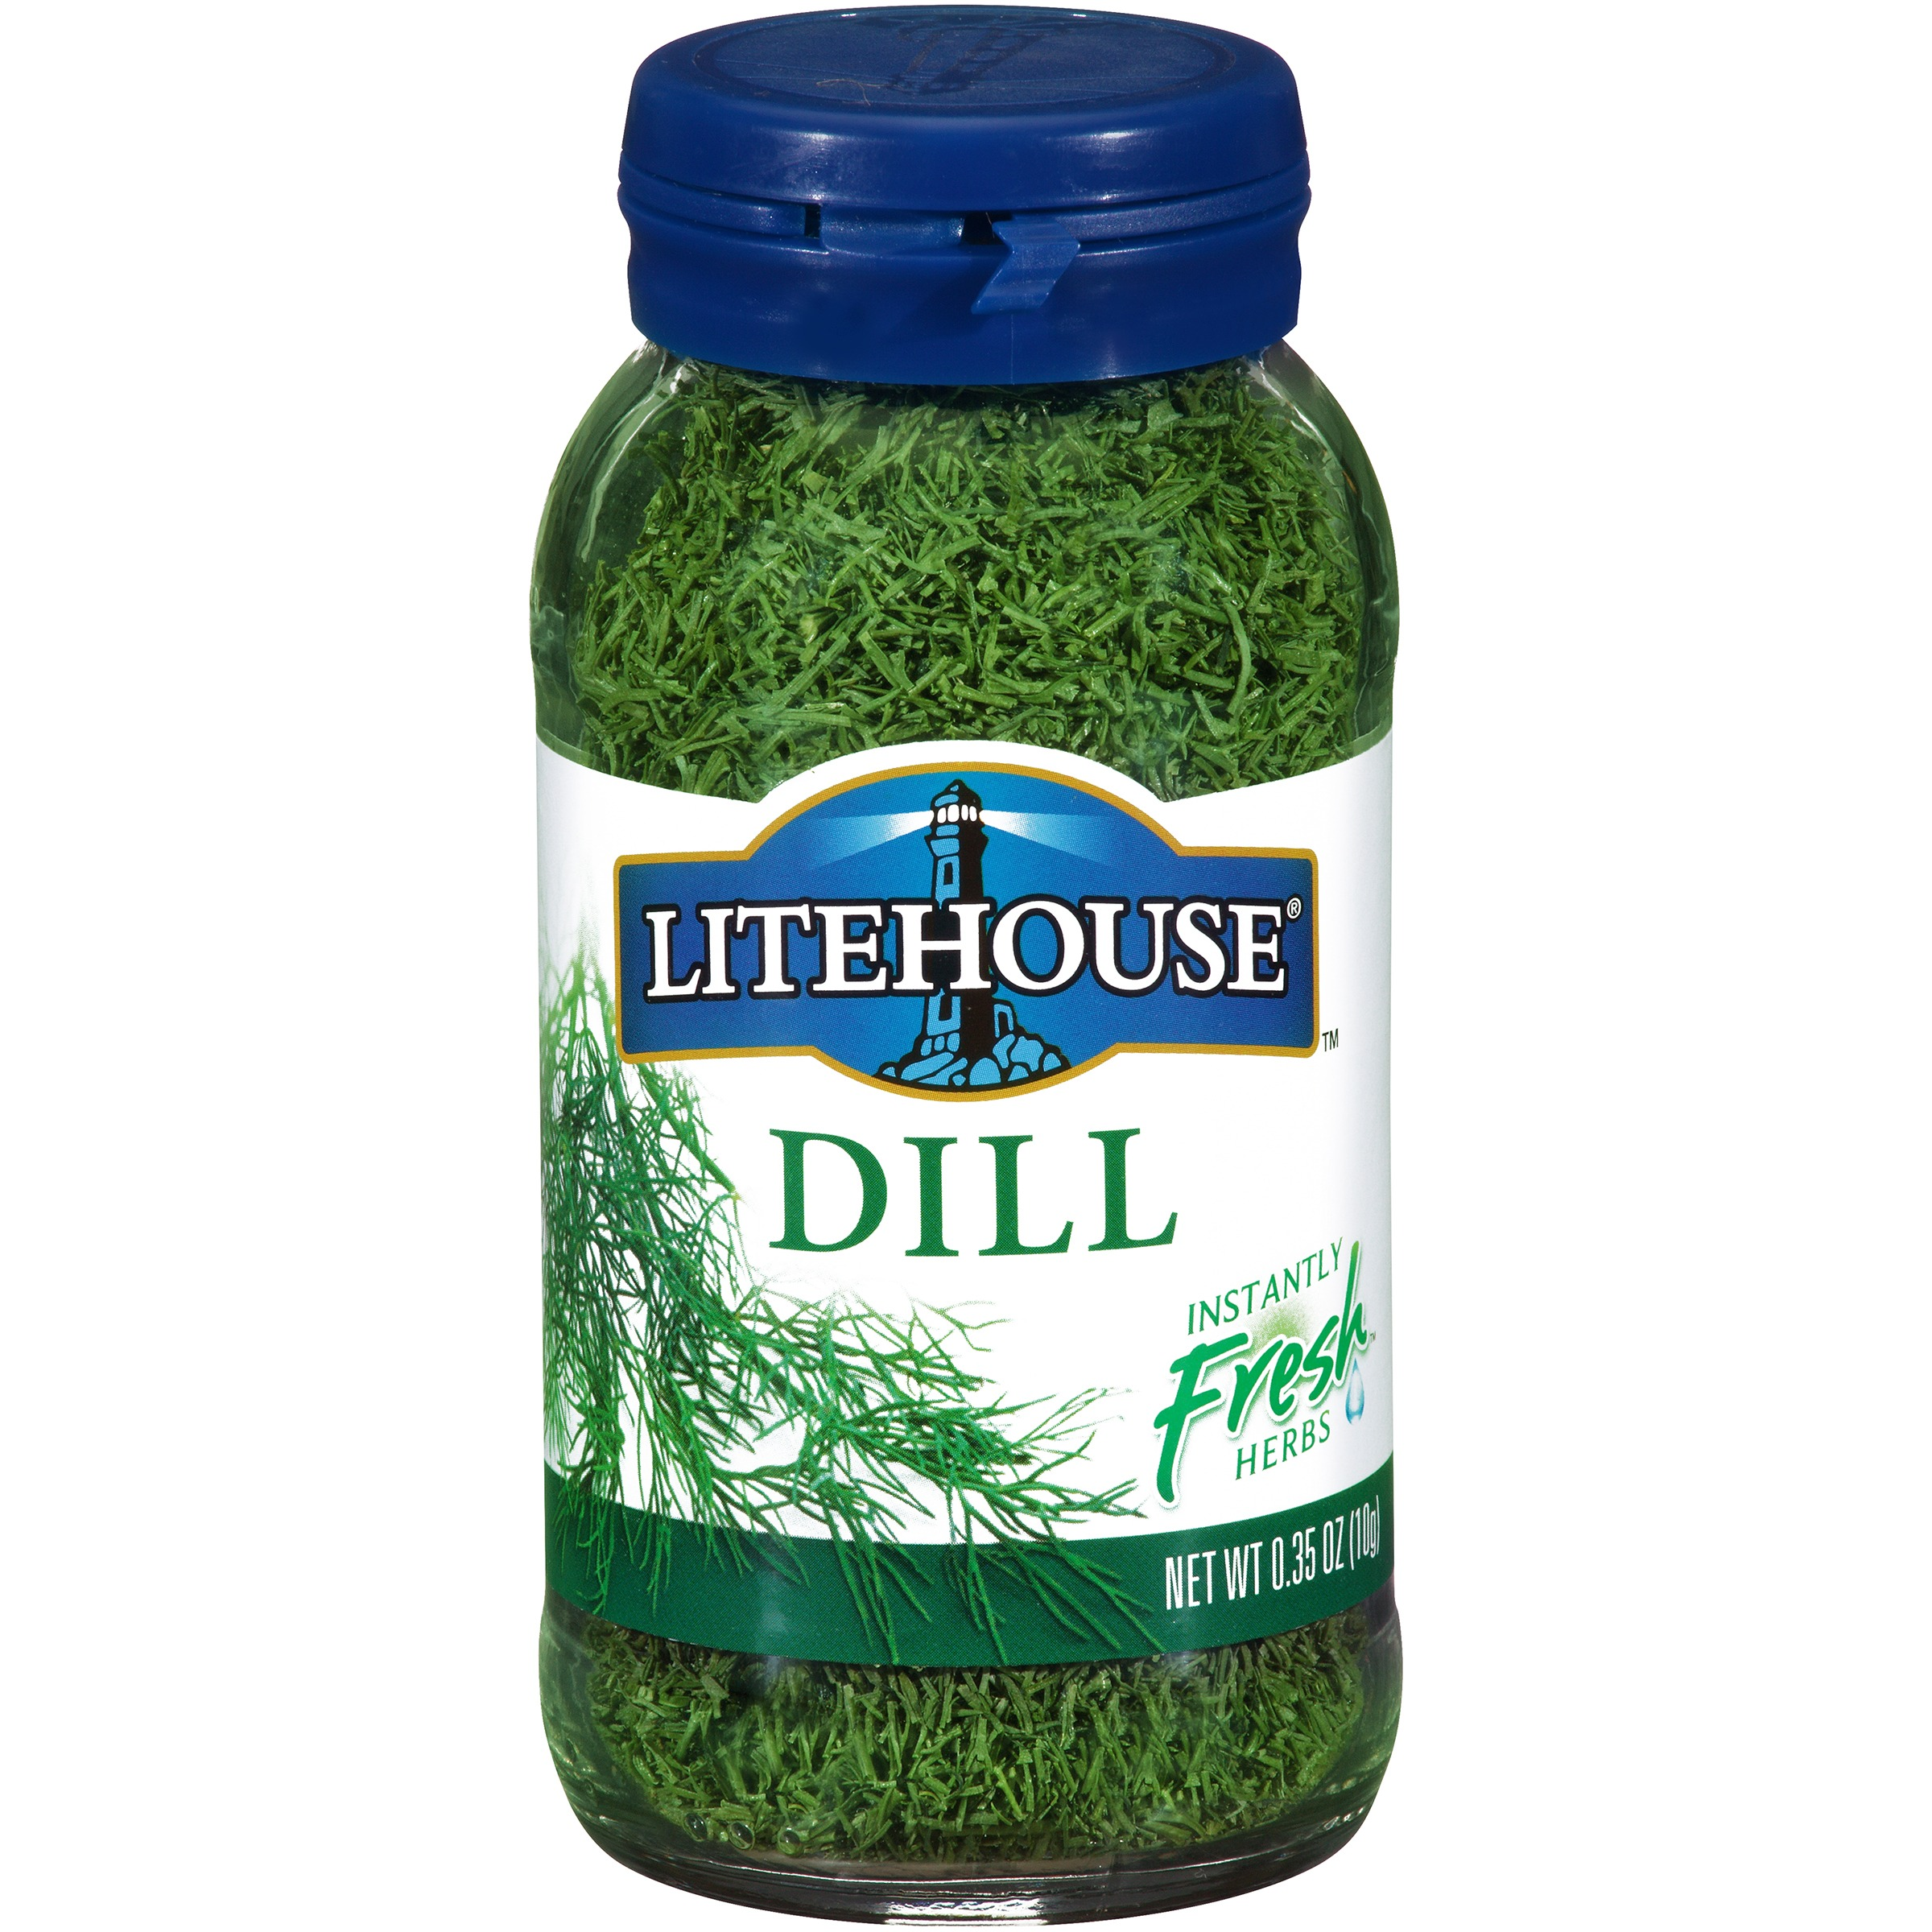 Litehouse Dill Instantly Fresh Herbs, 0.35 oz by Litehouse Inc.